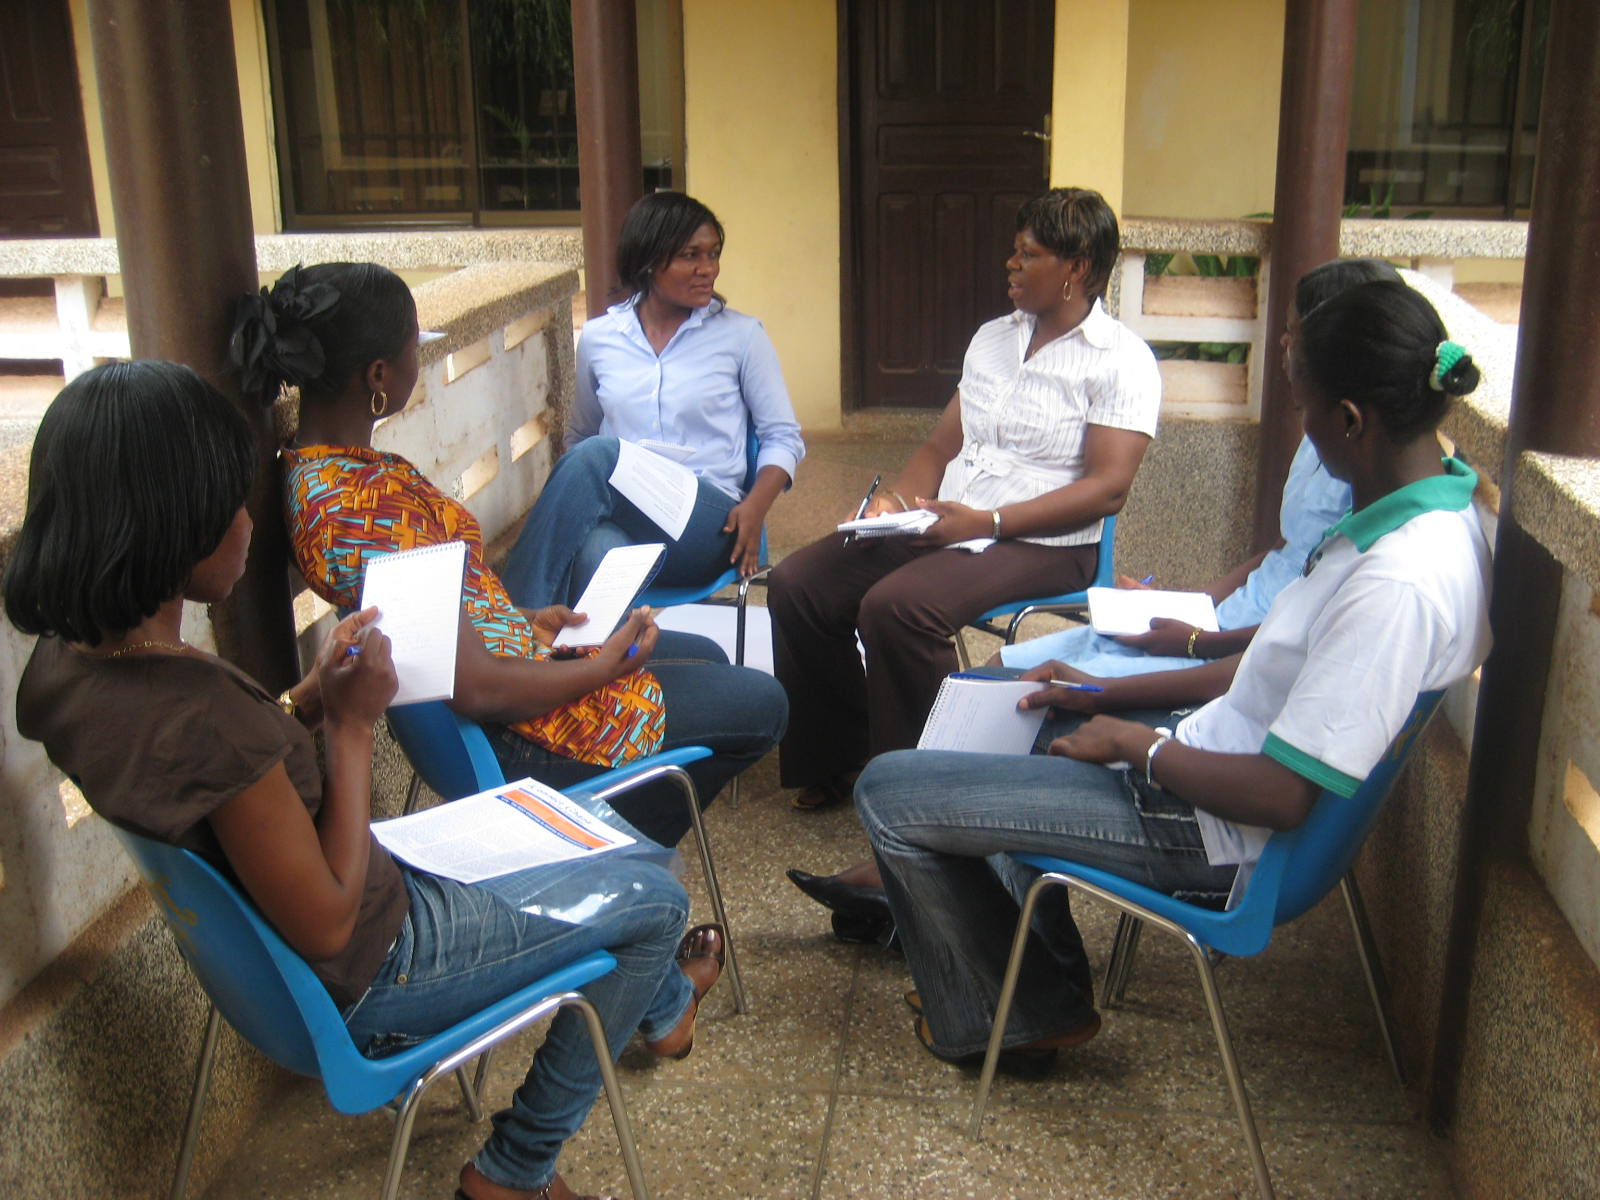 People Taking Part in a Campaign Focus Group